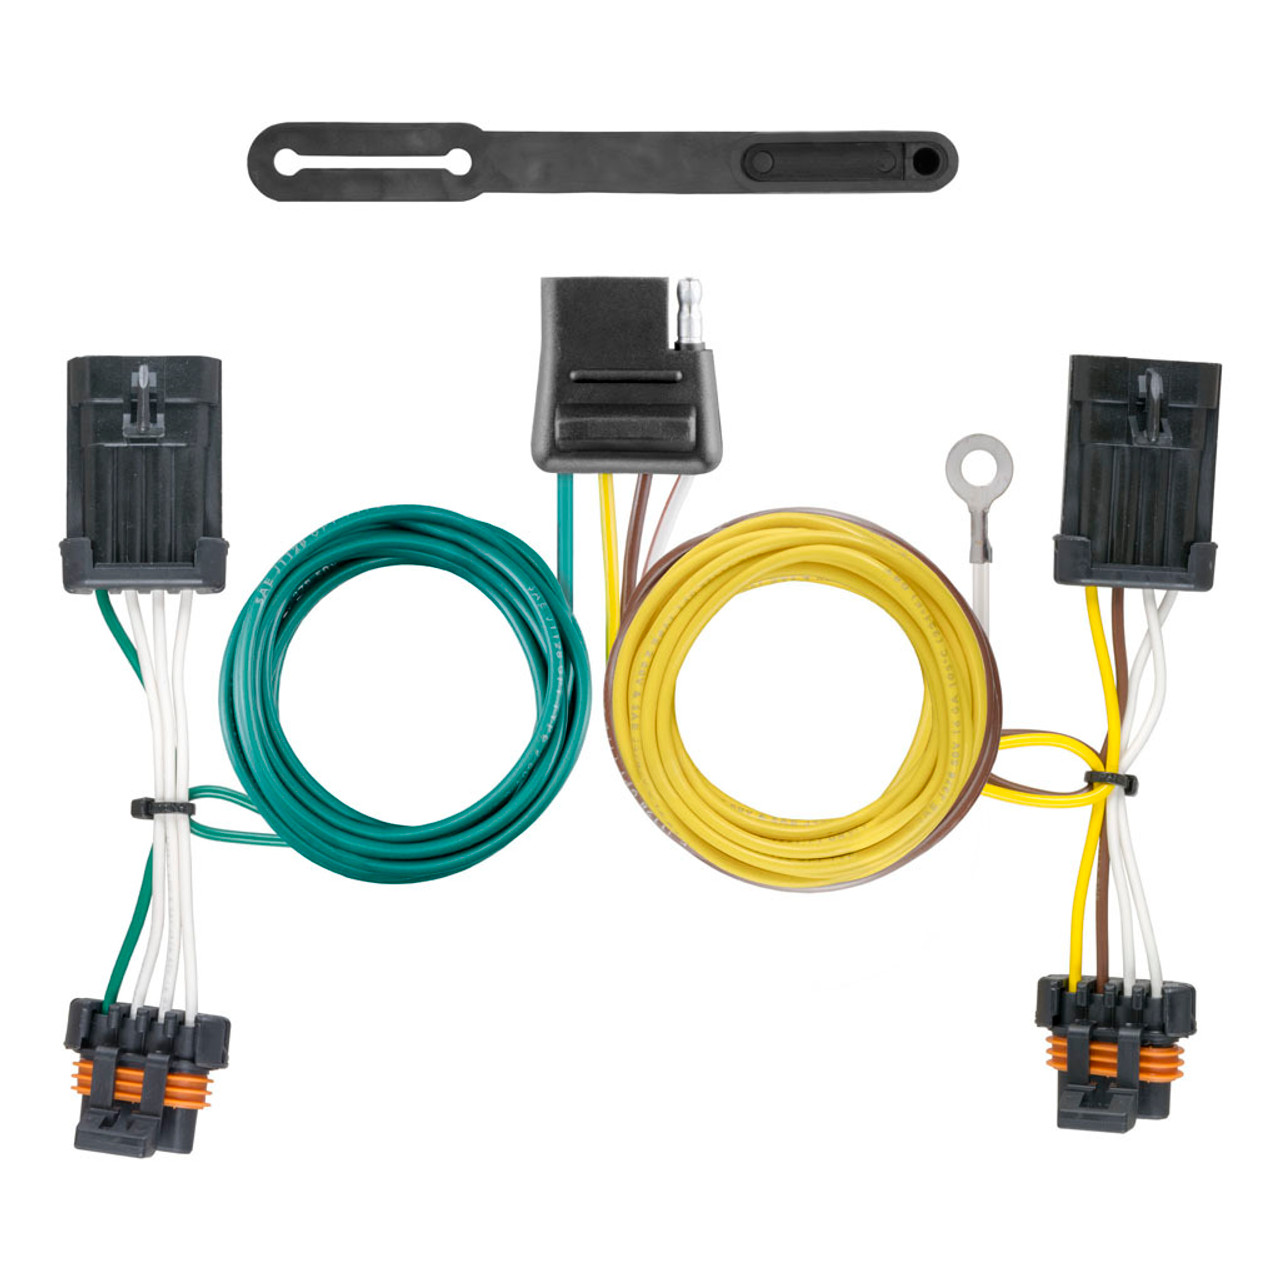 Curt Custom Wiring Harness 56340 Hitchmart Trailer Hitch No Converter 4 Flat Fit